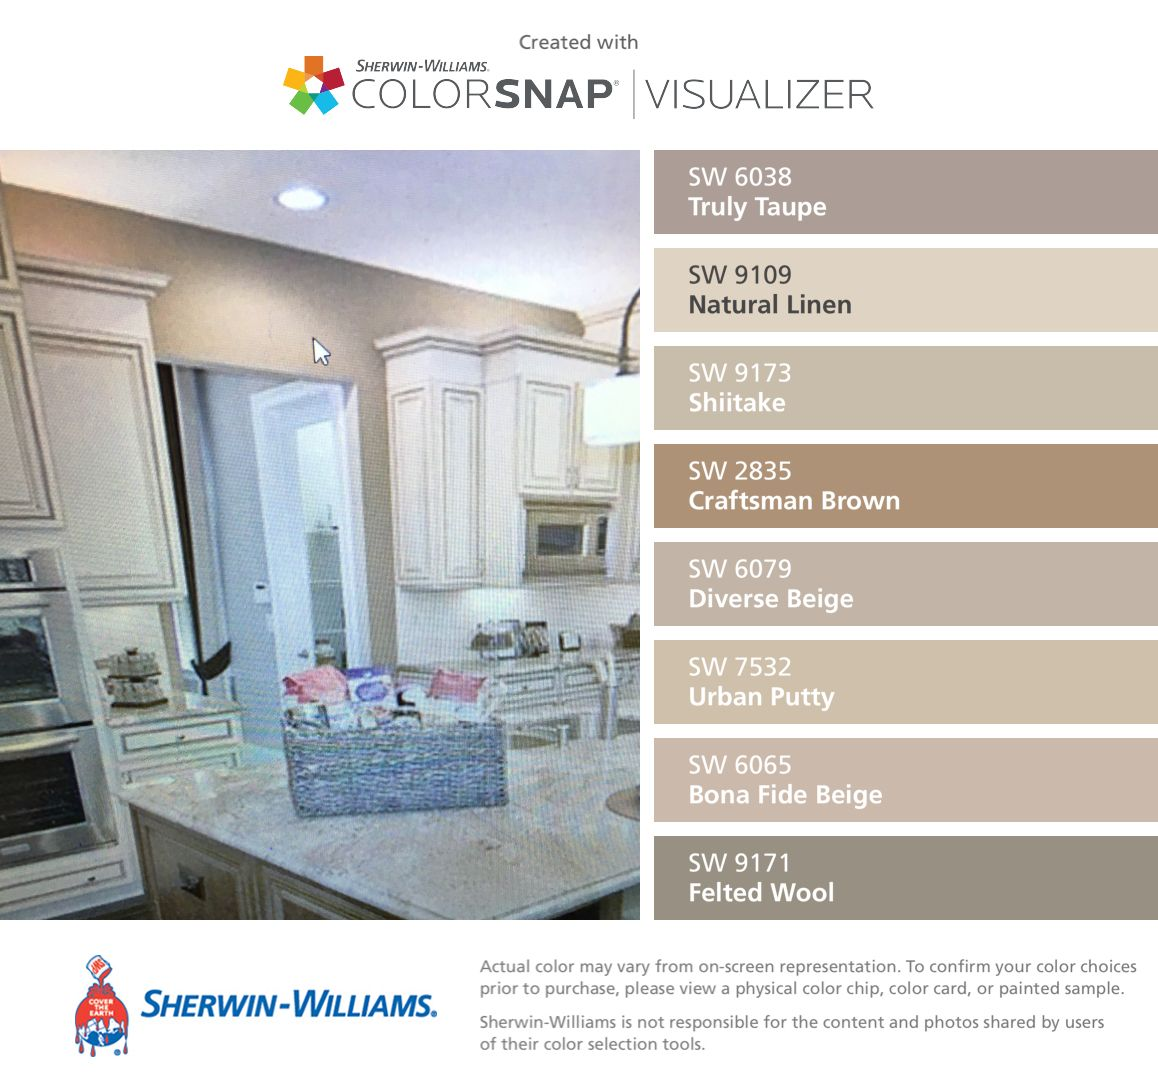 I Found These Colors With Colorsnap Visualizer For Iphone By Sherwin Williams Truly Taupe Sw 6038 Natural Linen 9109 Shiitake 9173